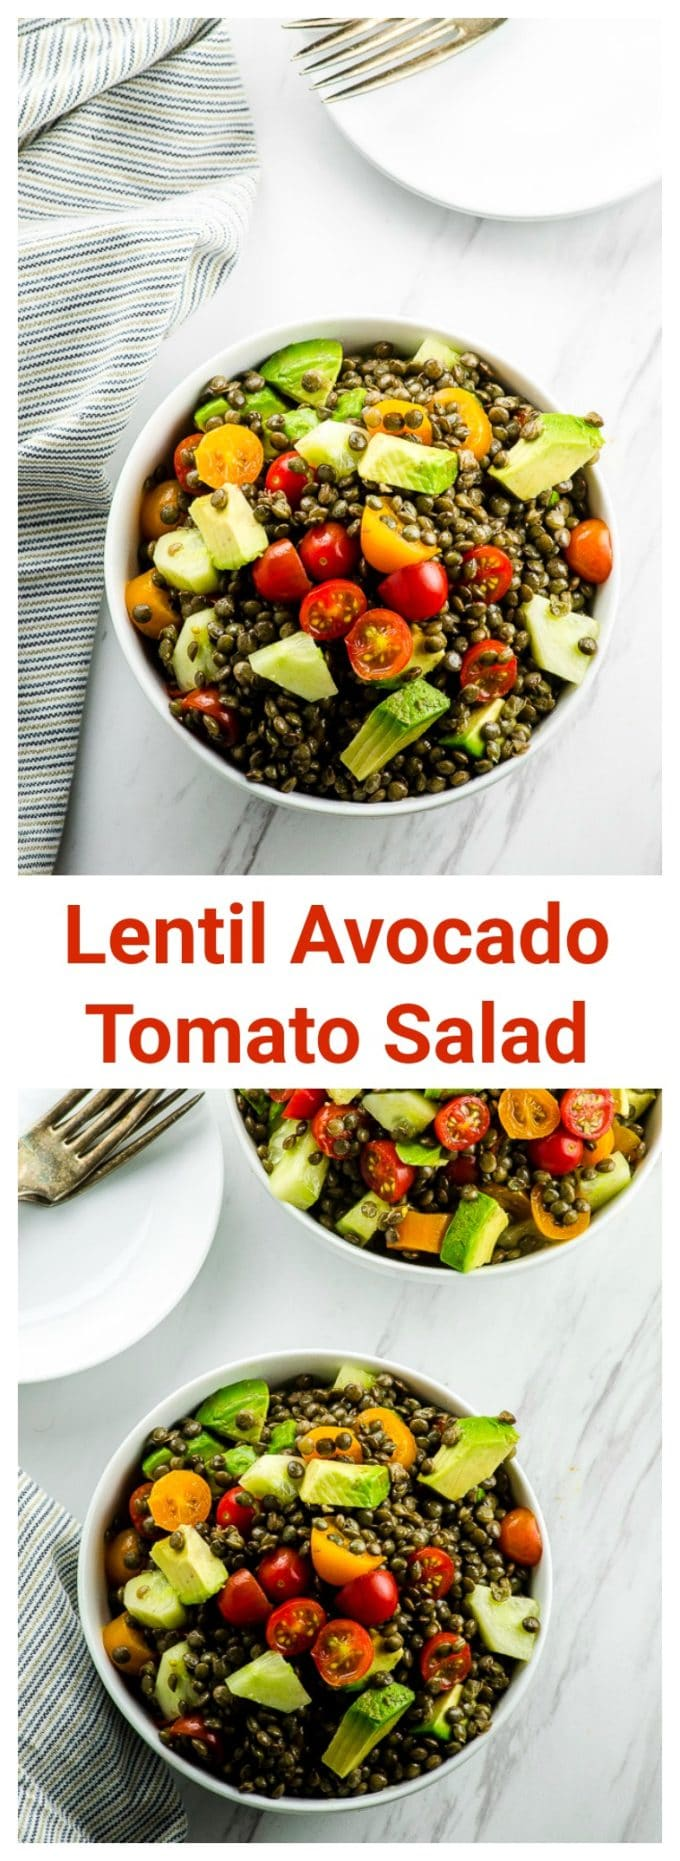 Avocado Tomato and Lentil Salad. A fresh, colorful and protein loaded salad, that is great for lunch or dinner or as a side dish for your next gathering or BBQ